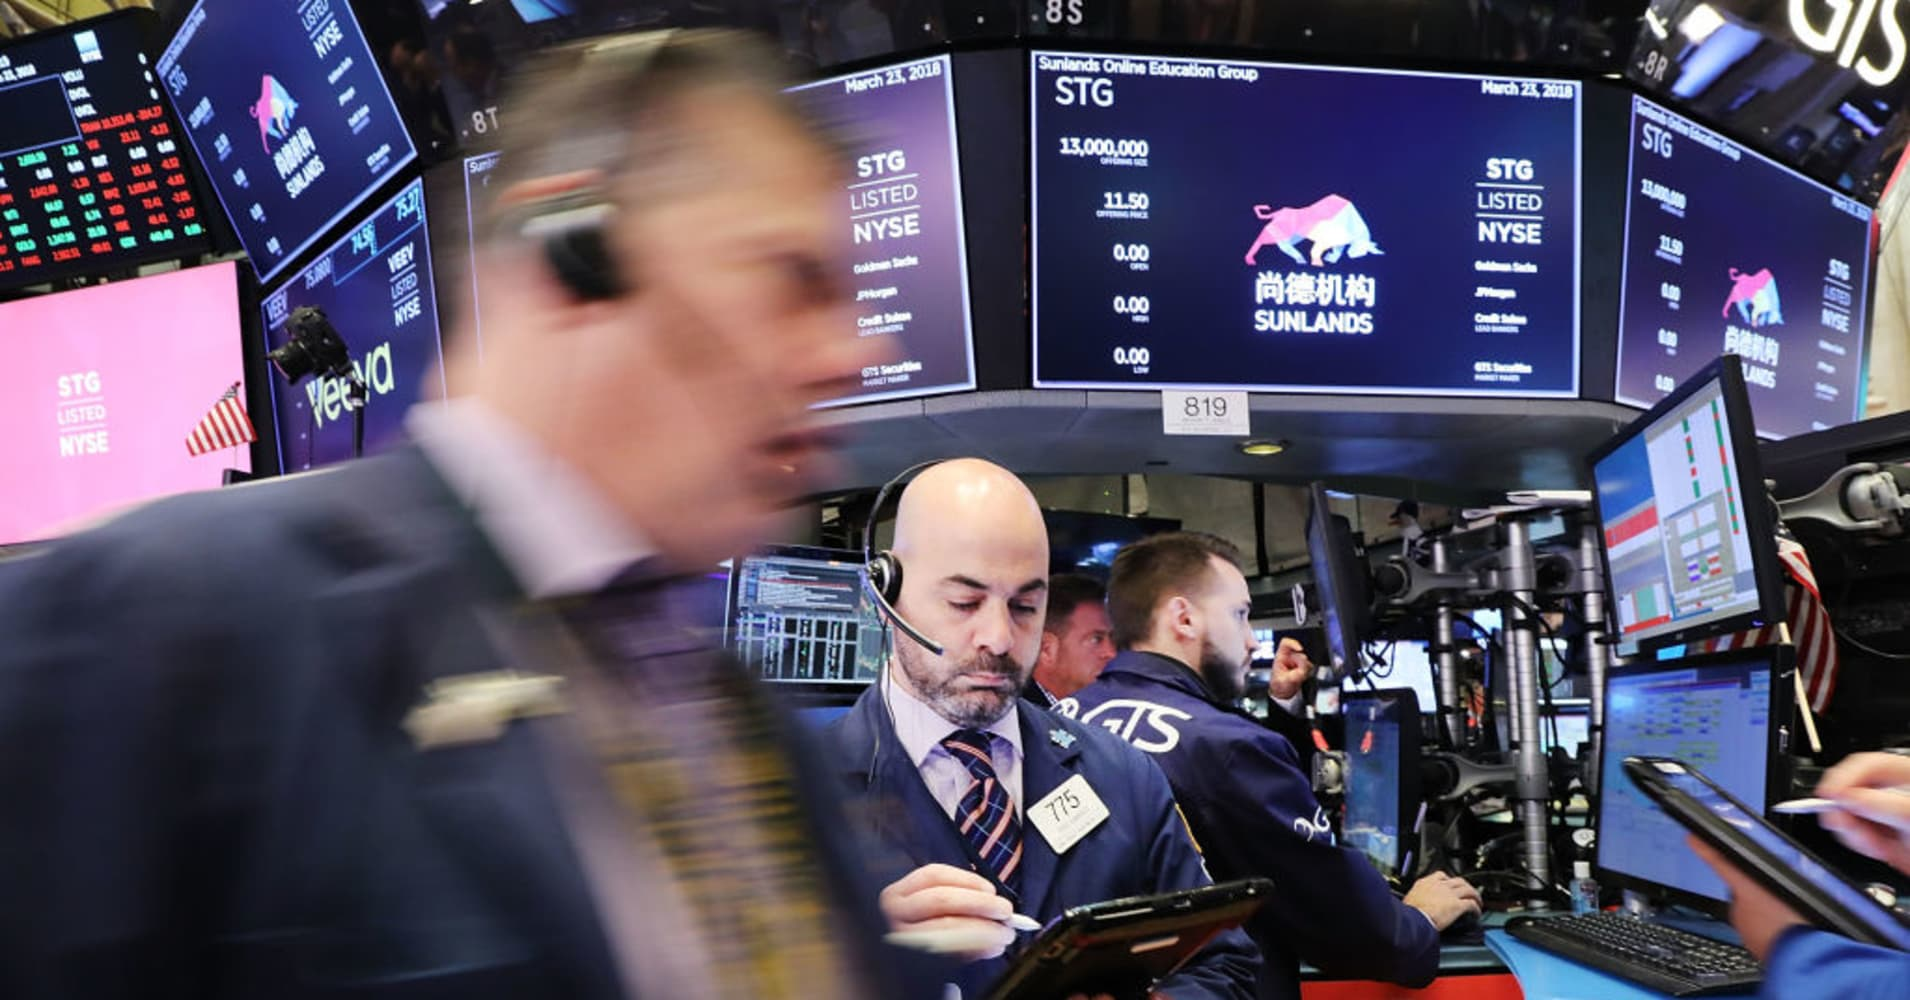 Dow tanks more than 450 points, Amazon leads tech lower